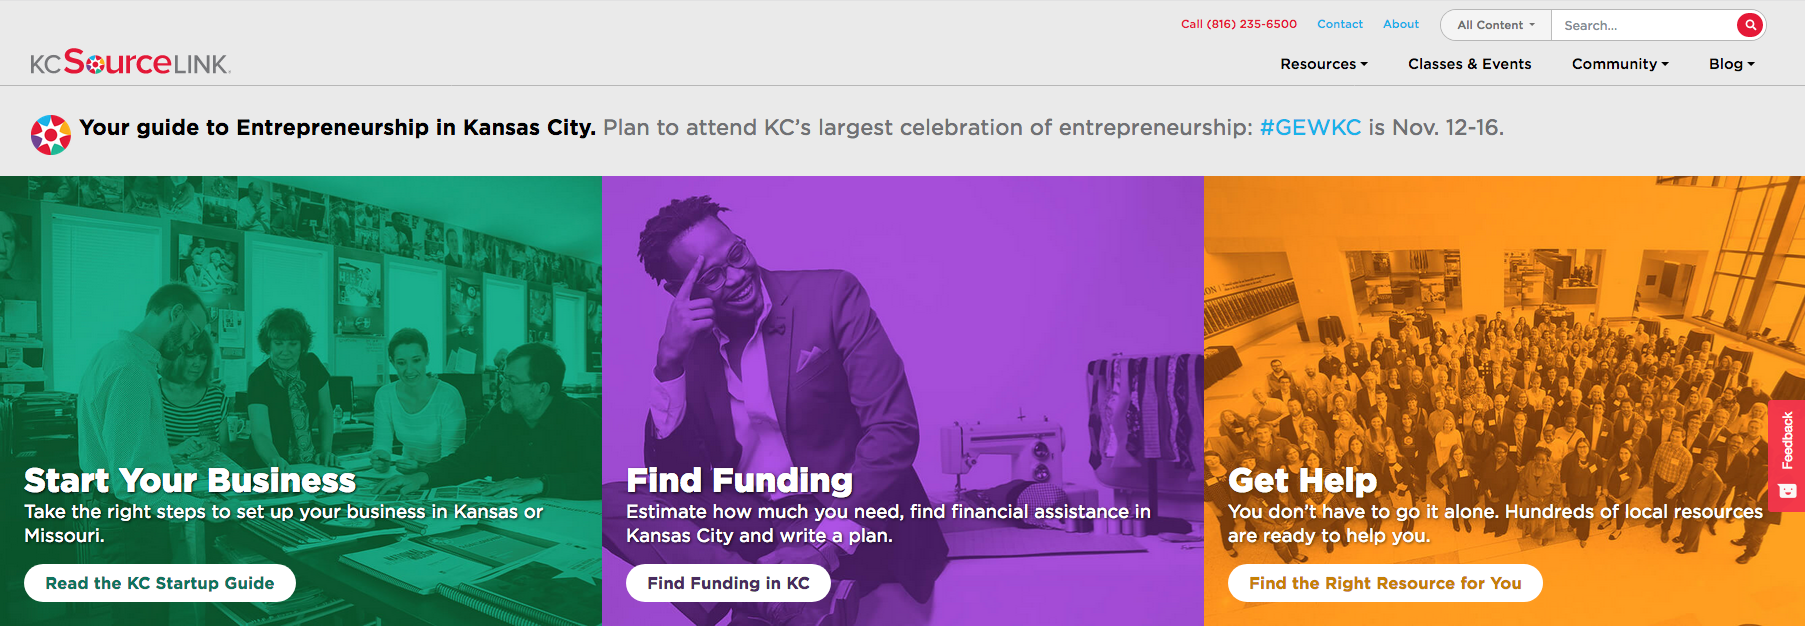 Grant plus matching funds allow KCSourceLink to continue boosting entrepreneurship